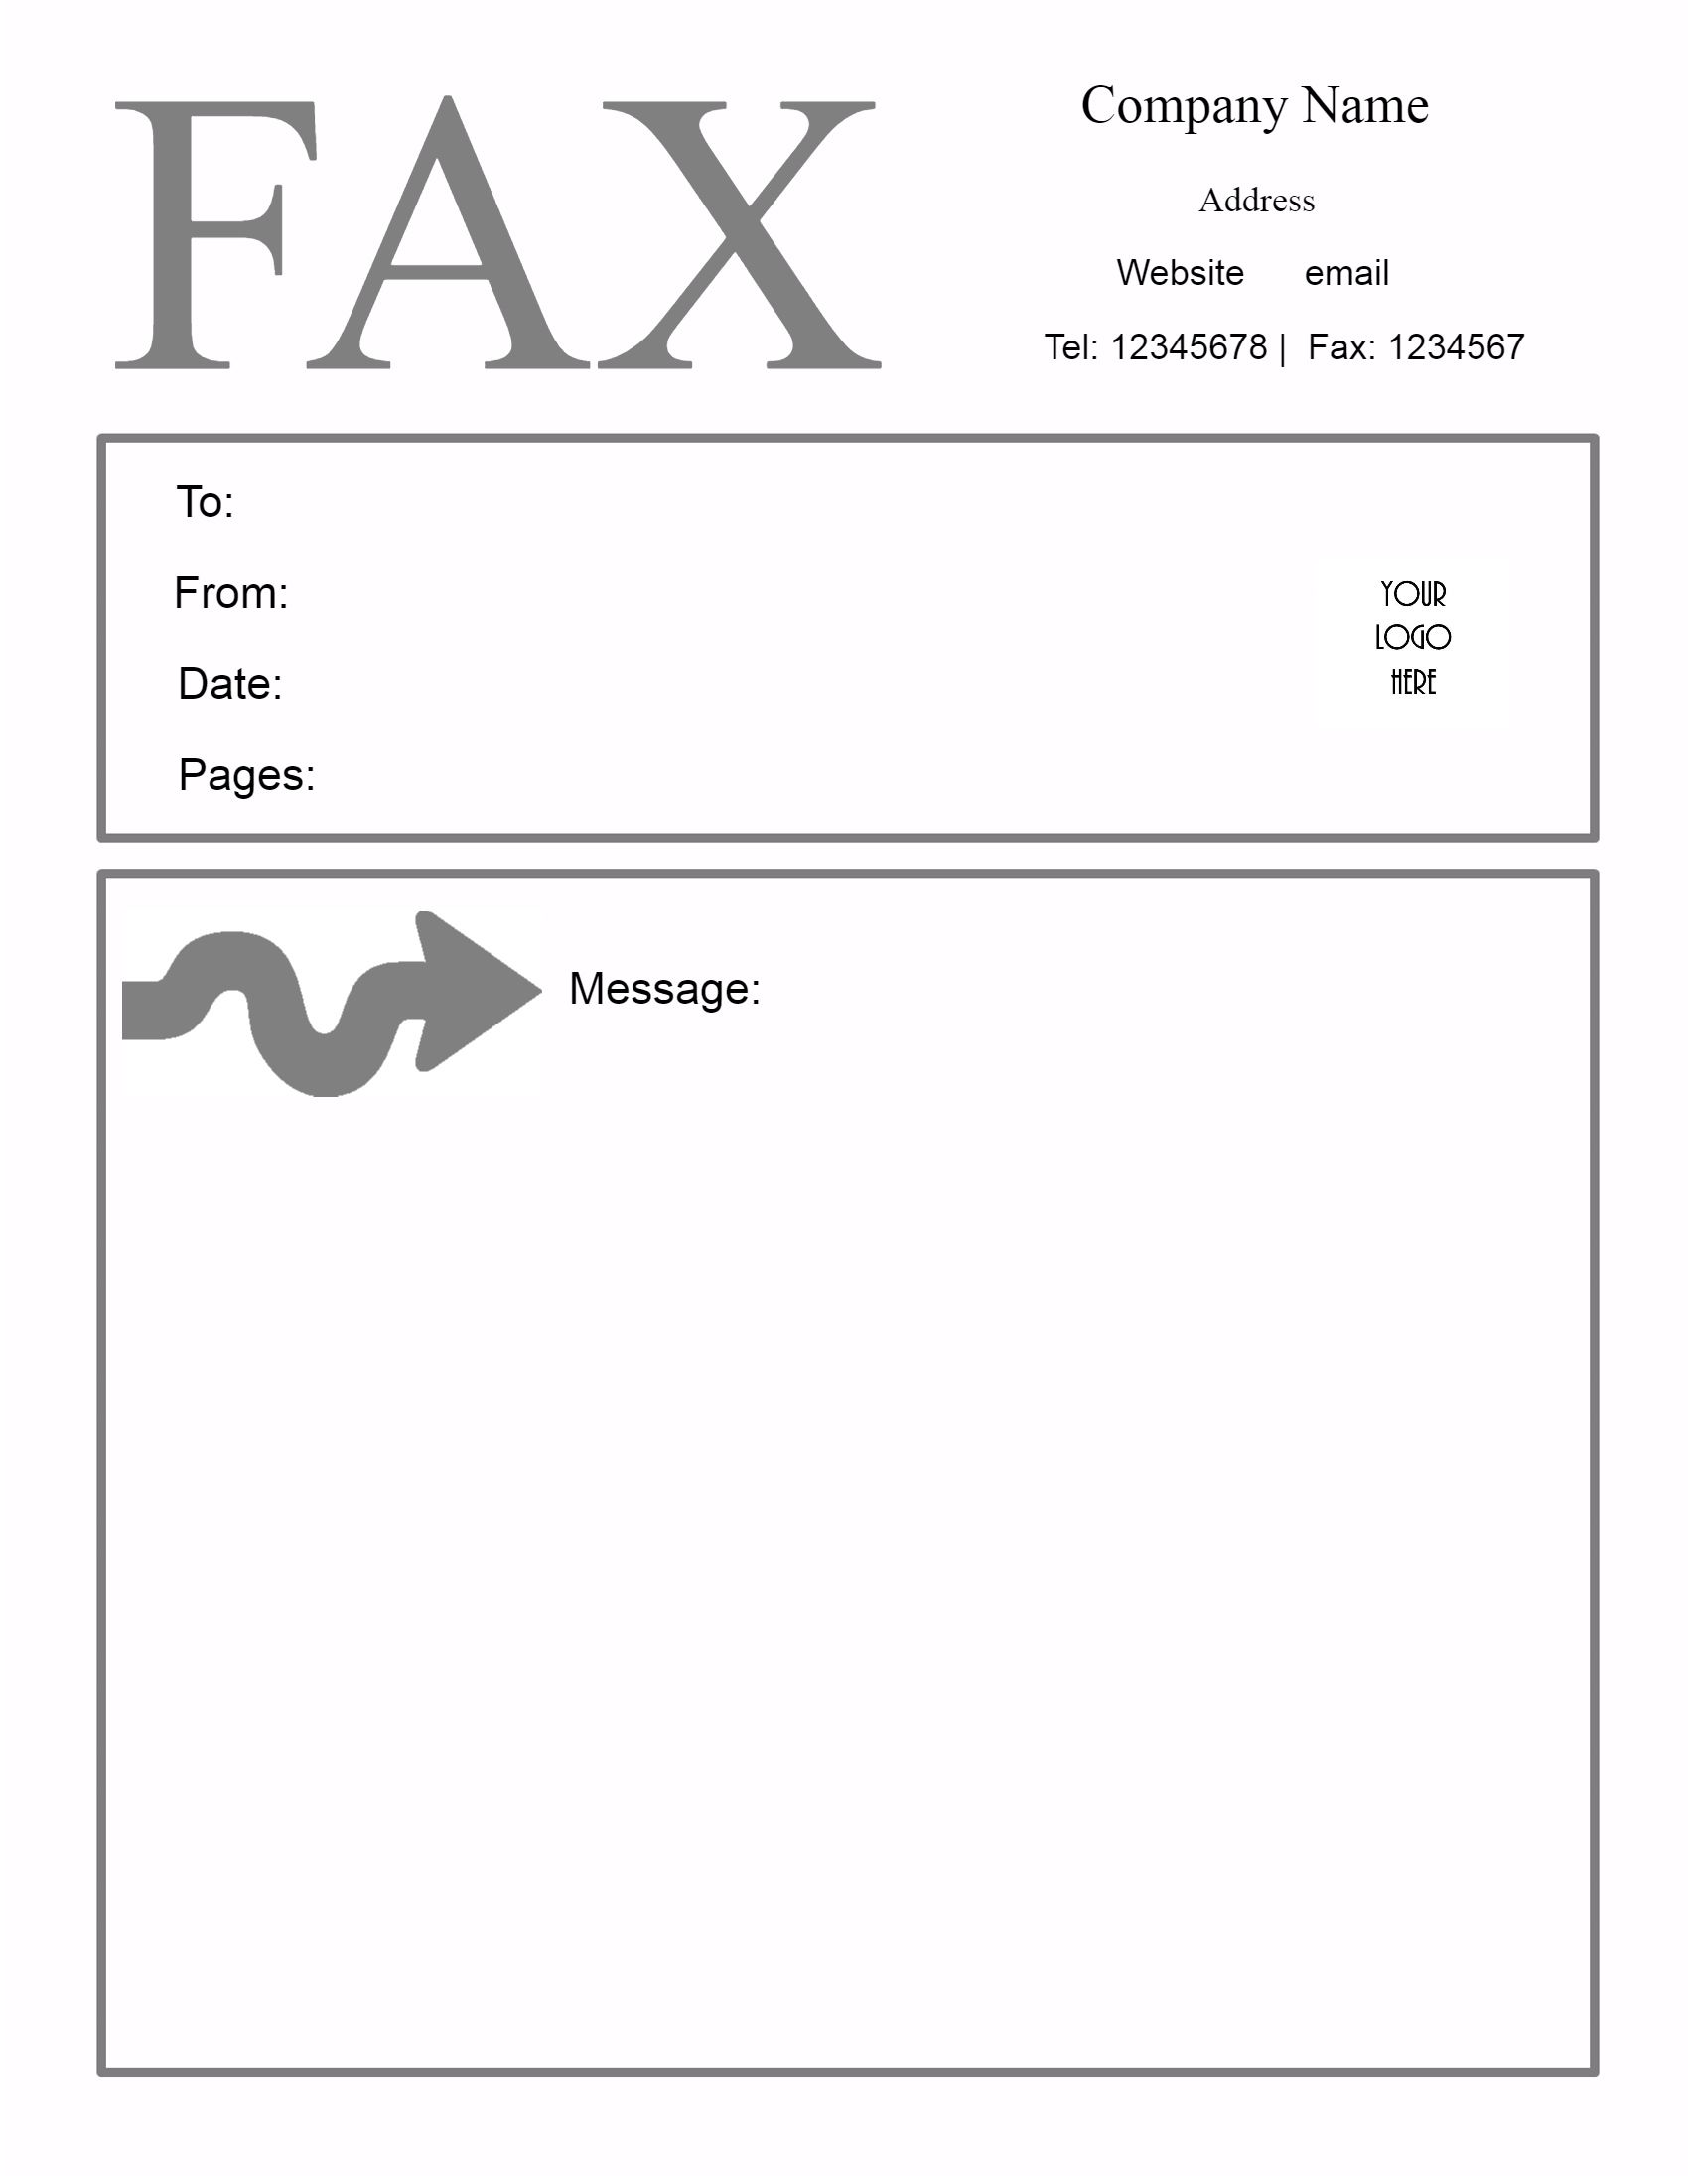 fax cover letter template sample fax cover sheet fax templates